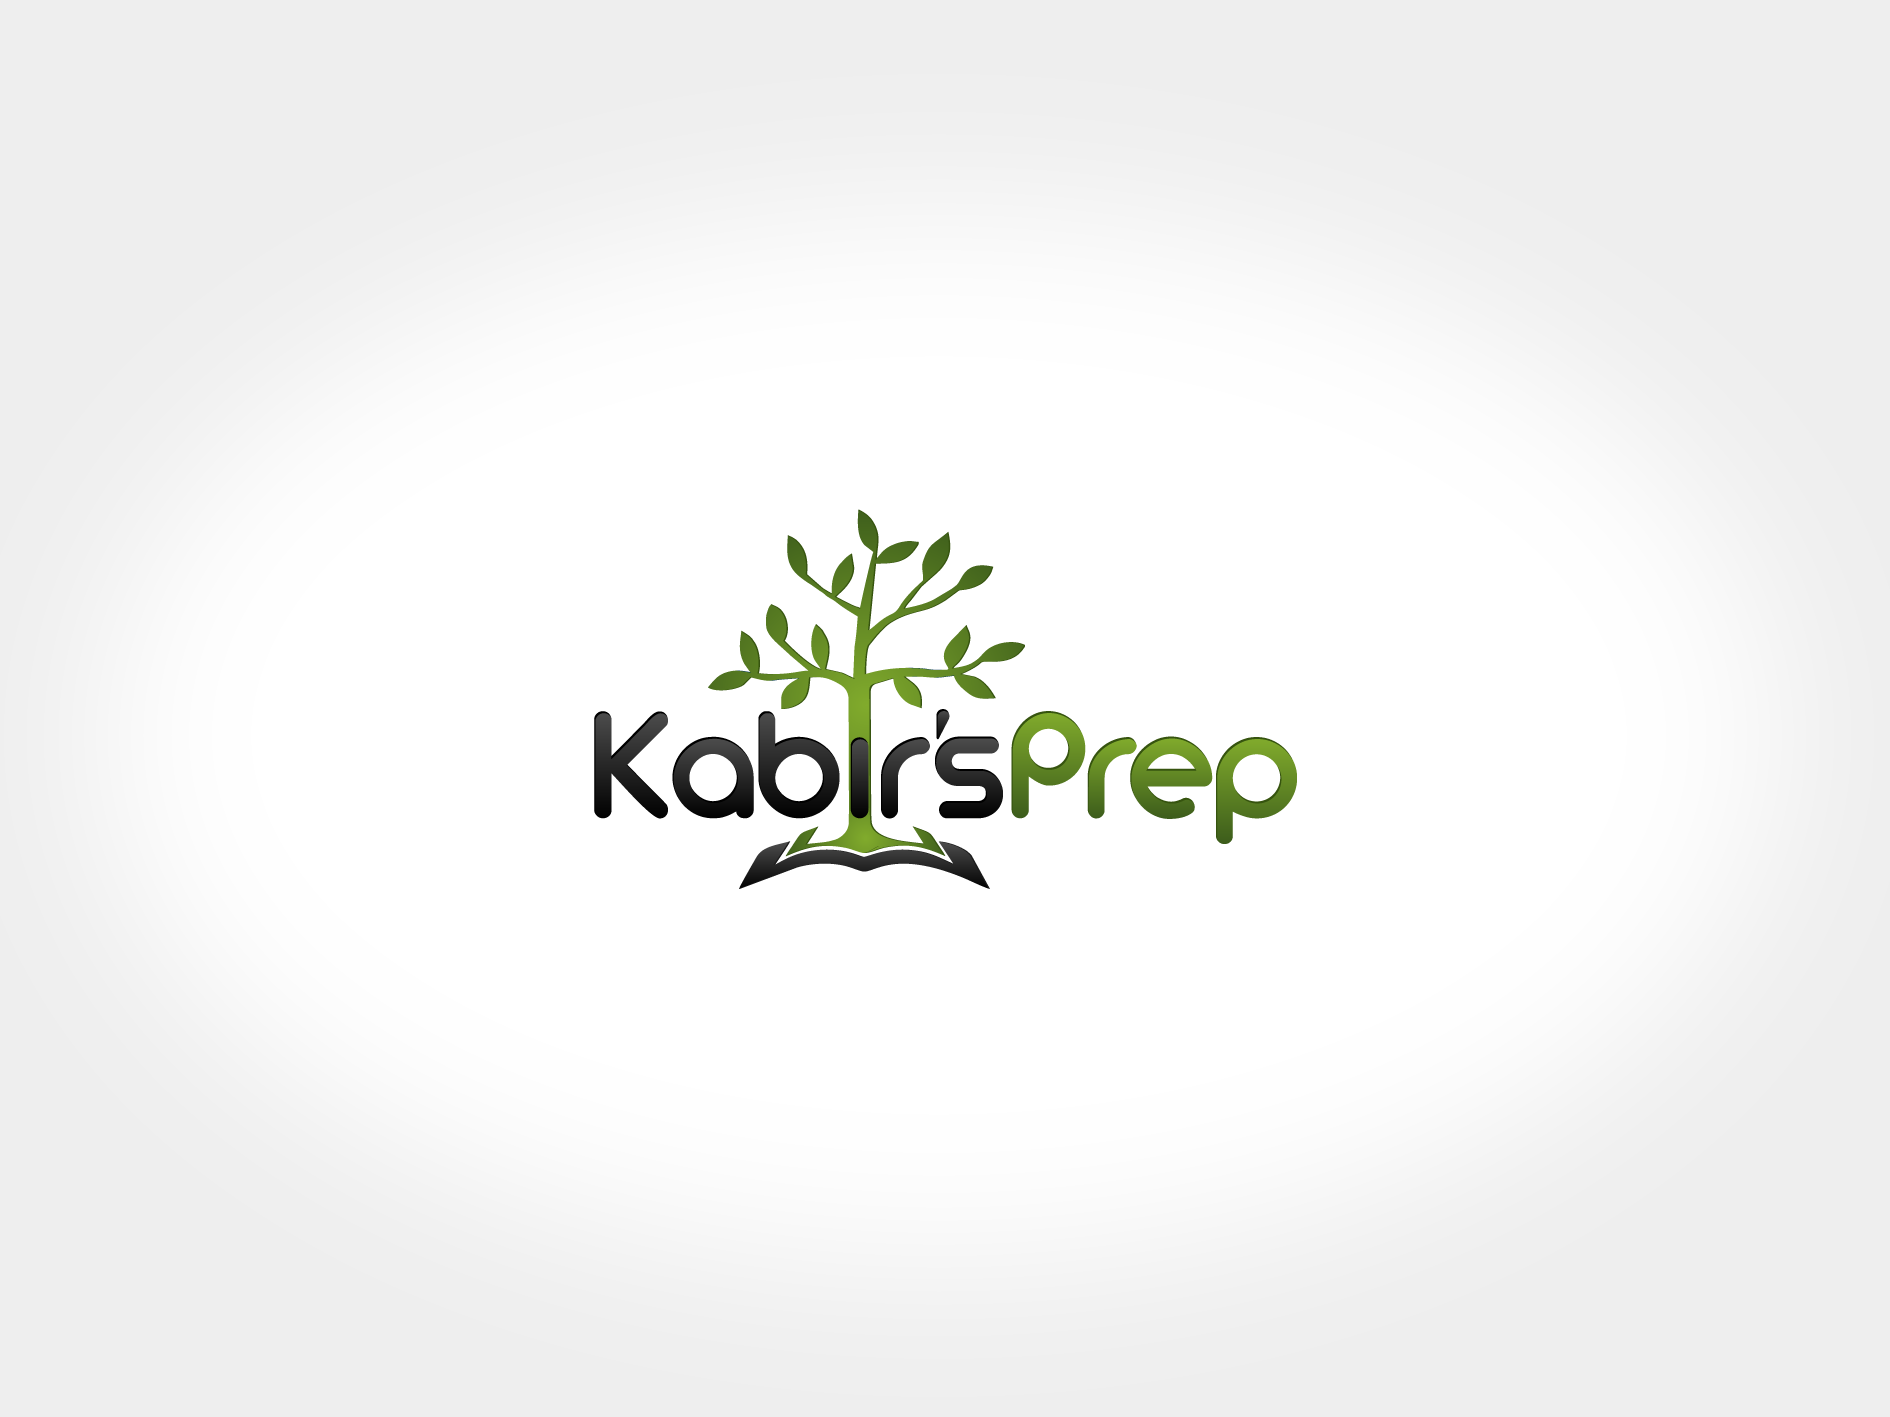 creative and modern logo wanted for educational company (Kabir's Prep)